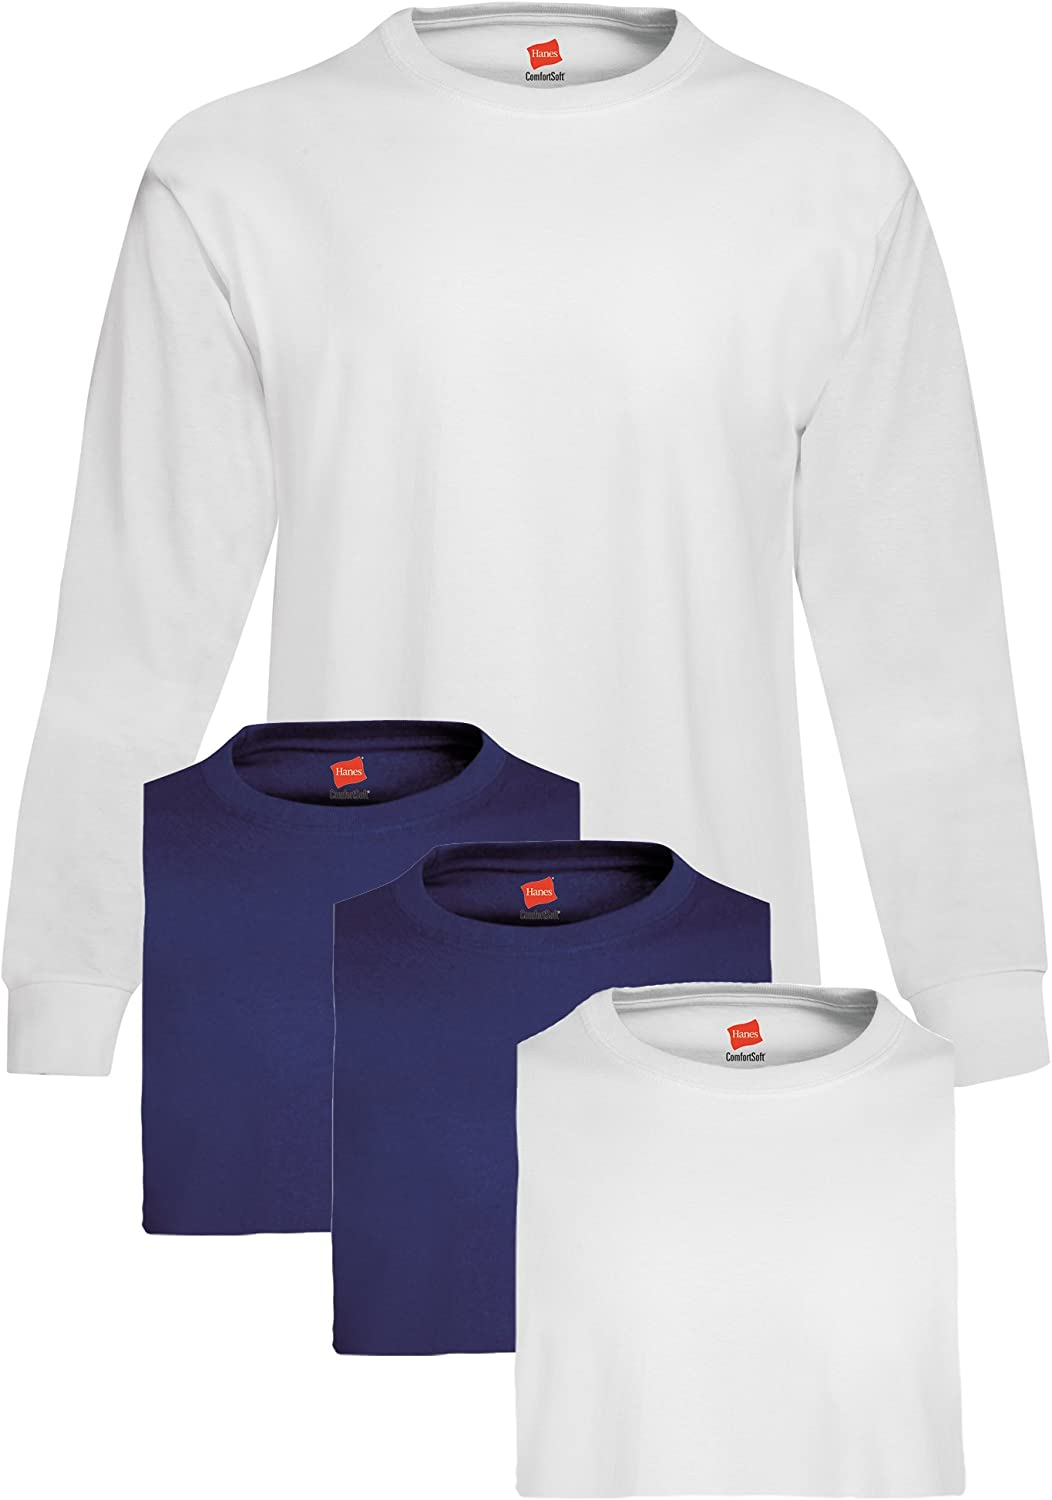 Hanes Men's 4 Pack Long Sleeve T-Shirt, 2 White/2 Navy